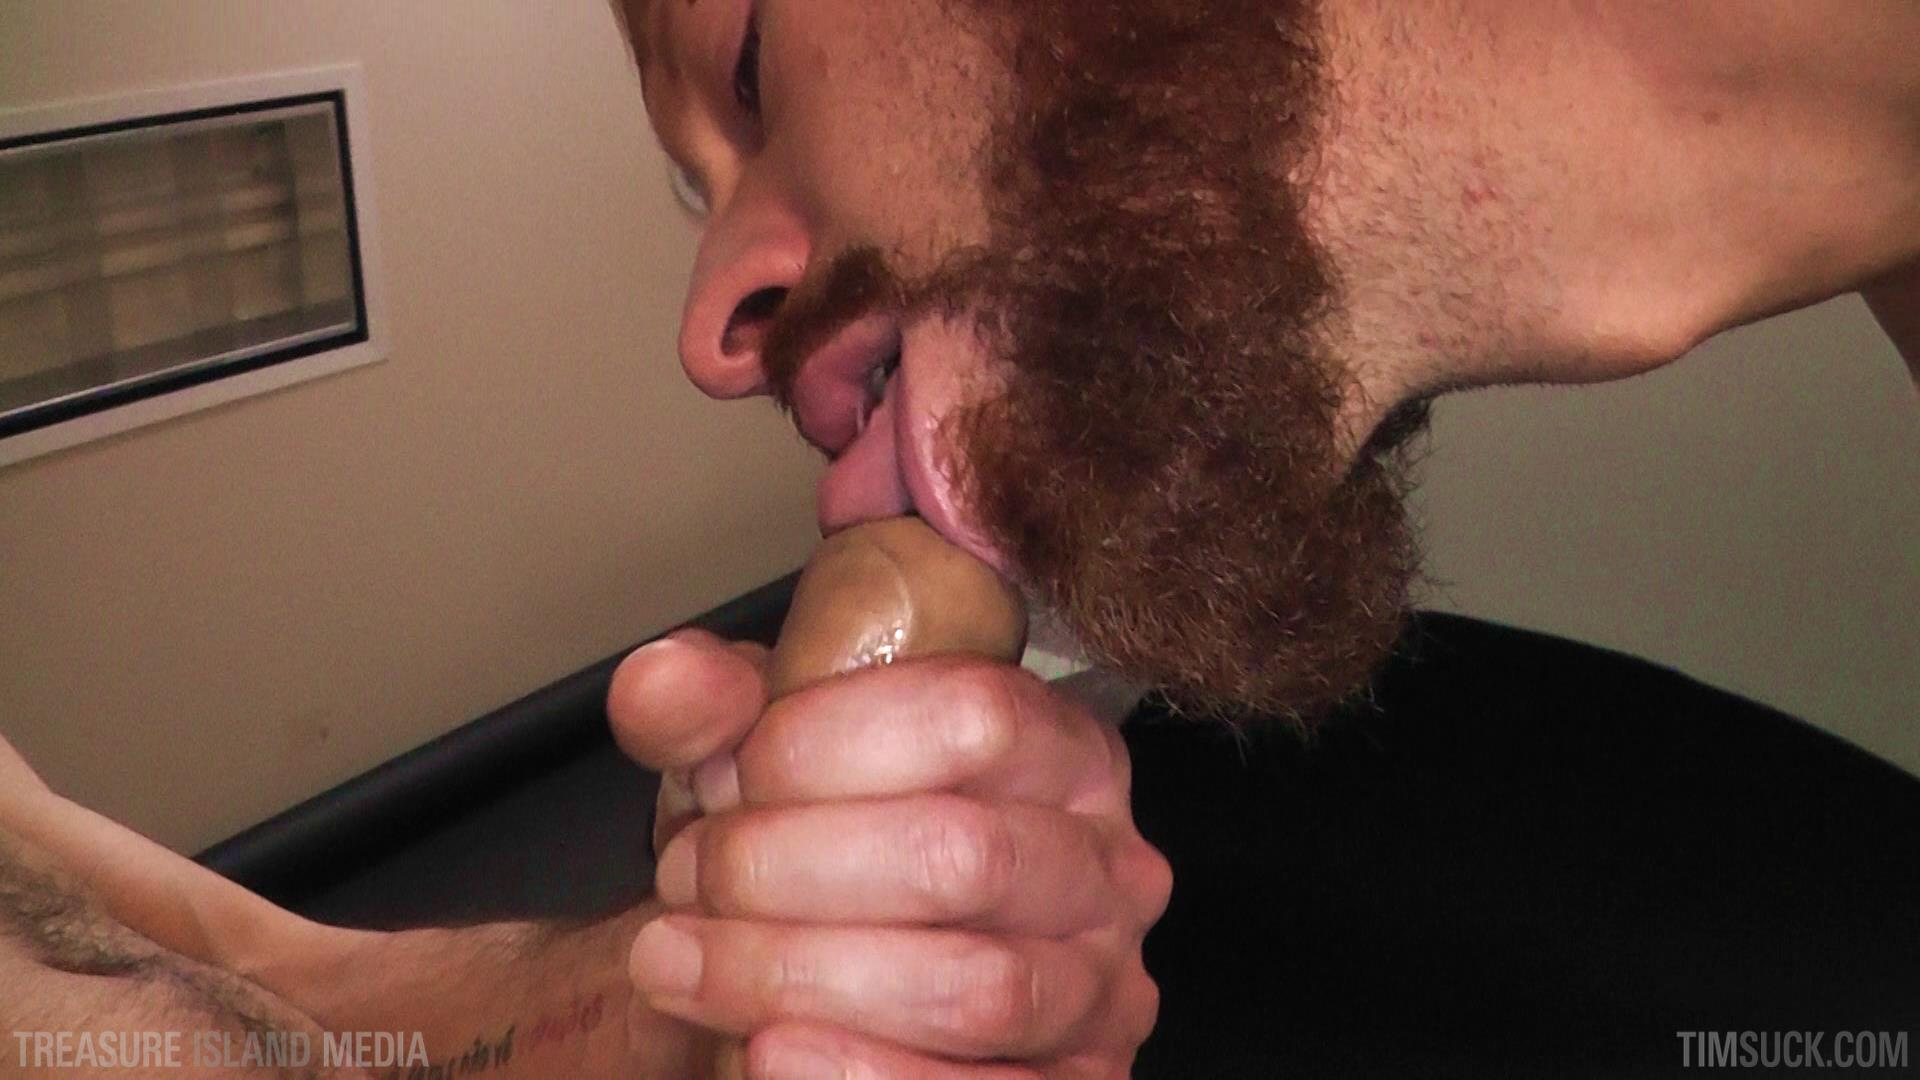 Treasure-Island-Media-TimSuck-Pete-Summers-and-Dean-Brody-Sucking-A-Big-Uncut-Cock-Amateur-Gay-Porn-43 Bearded Ginger Services A Big Uncut Cock And Eats The Cum